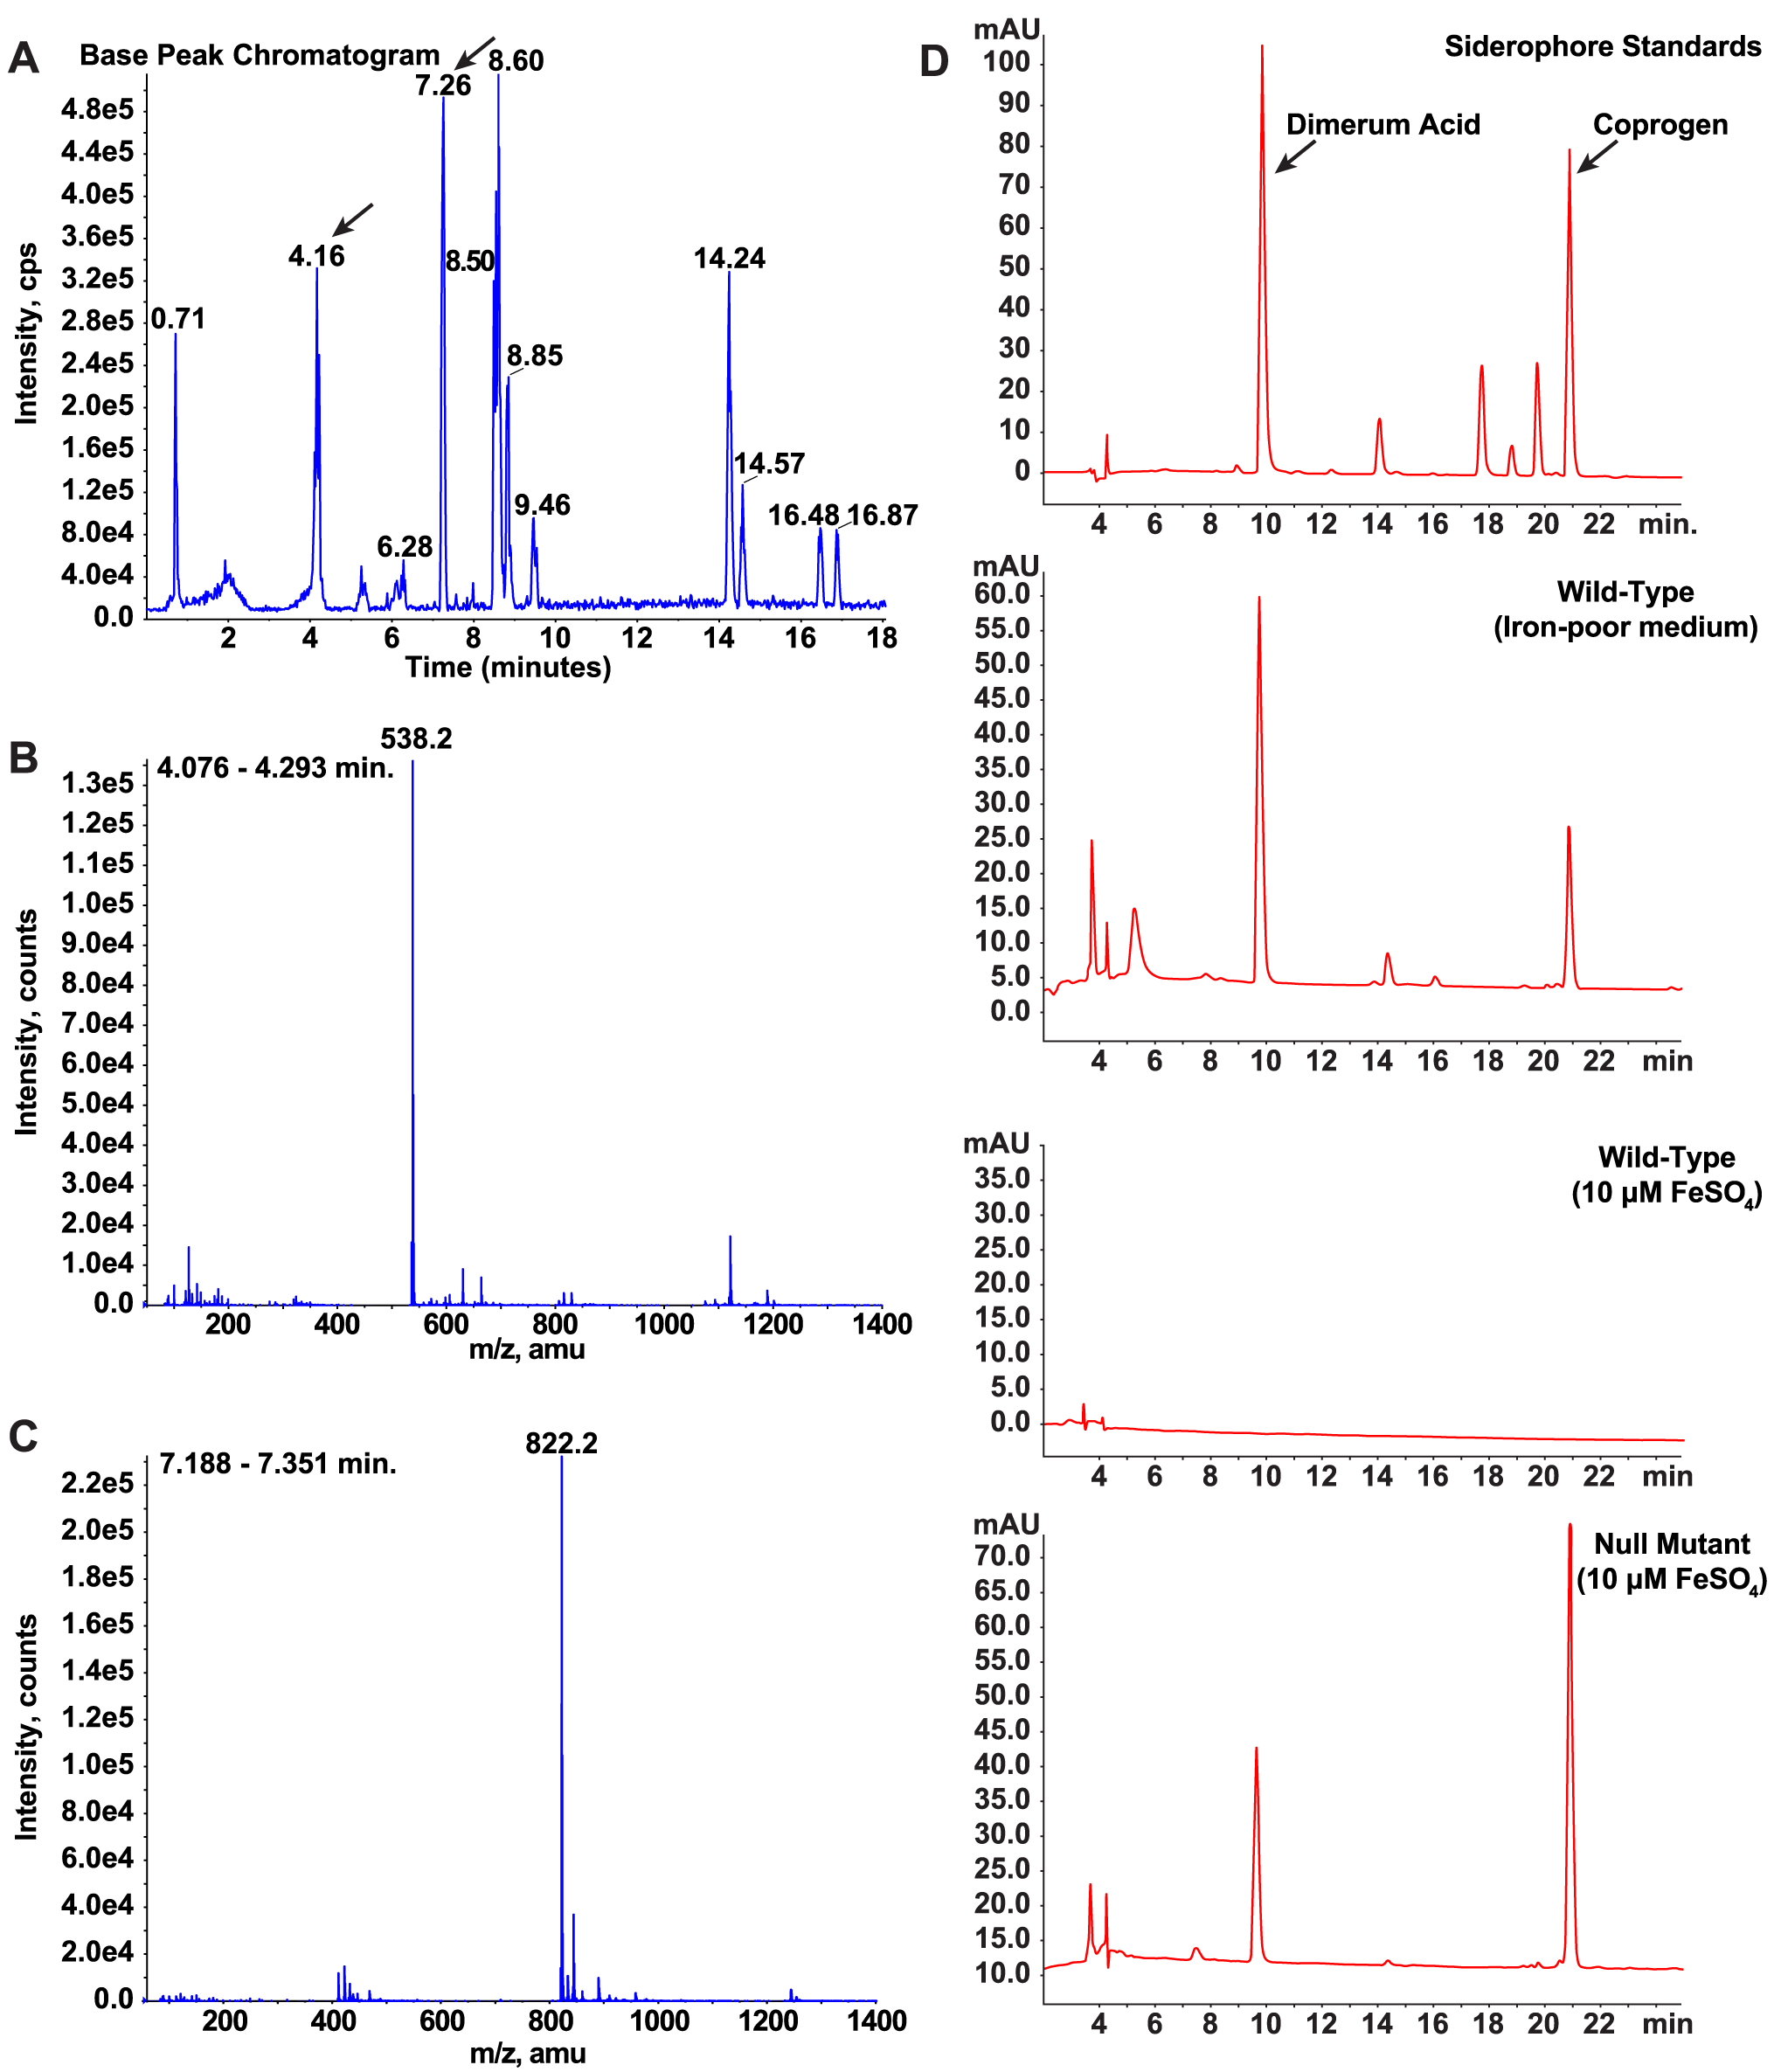 Identification and characterization of siderophores in <i>B. dermatitidis</i>.